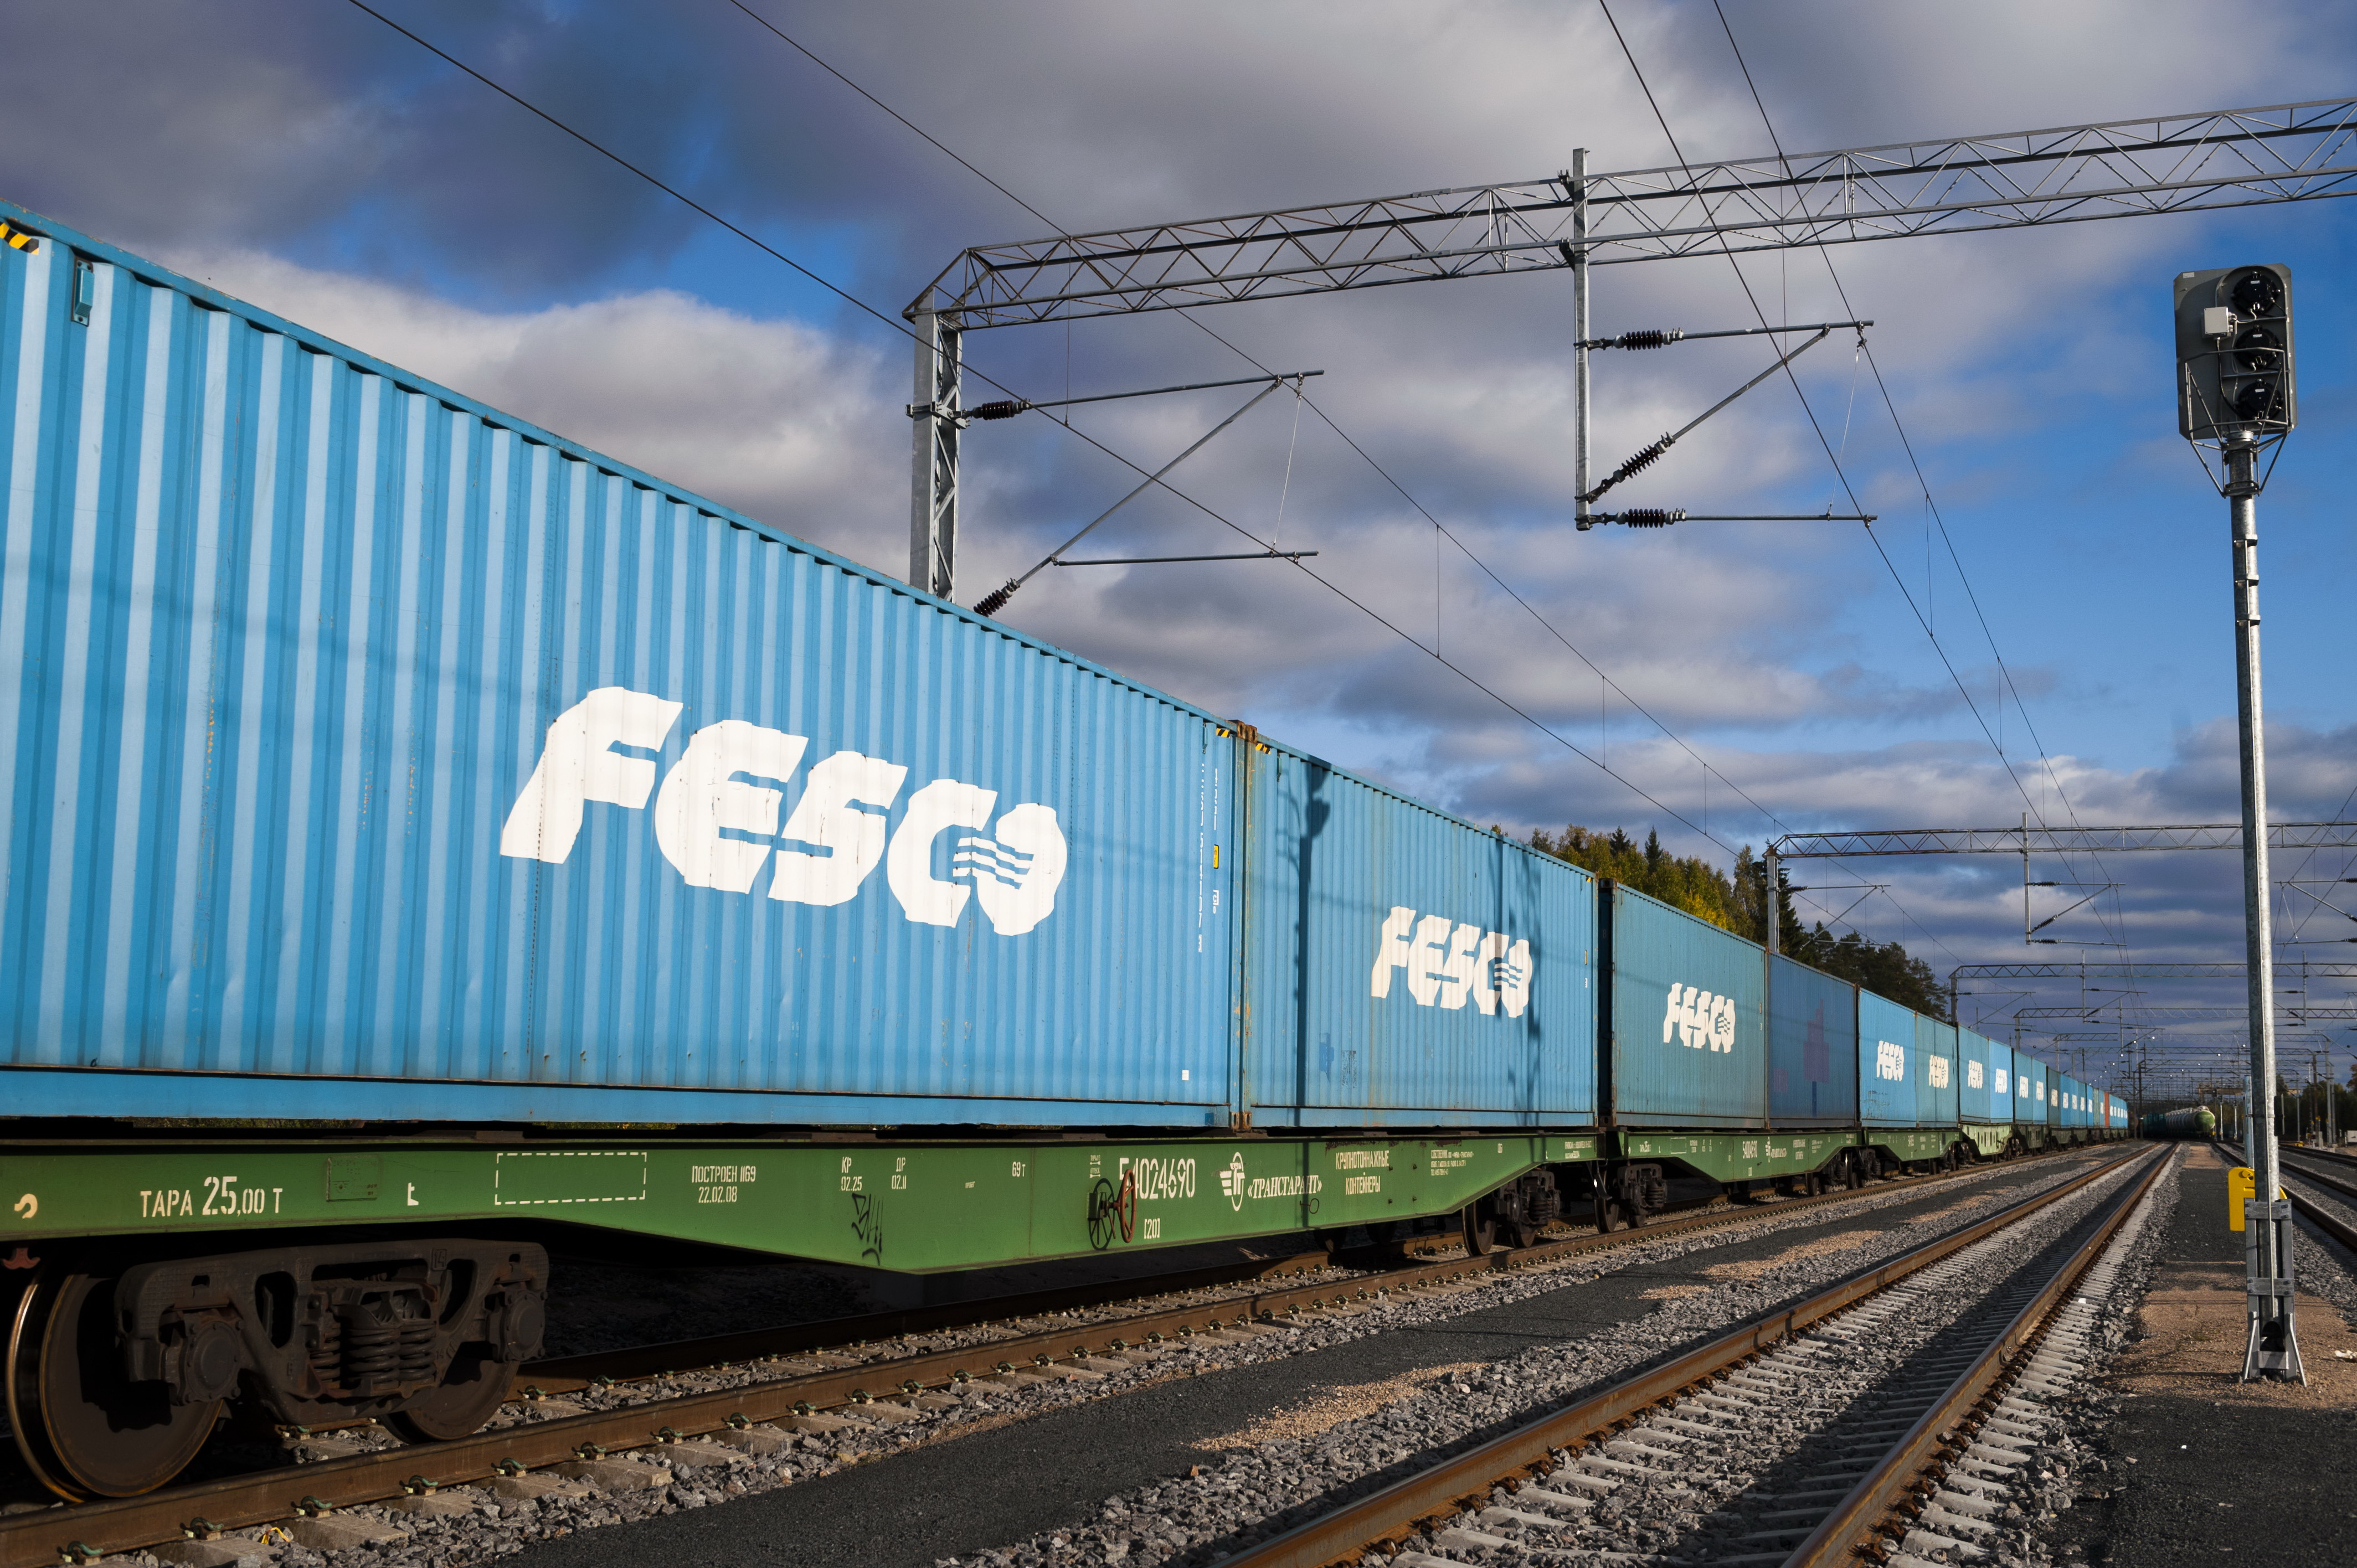 FESCO delivered the first batch of equipment to the Haval car plant under construction and launched new China-Russia train via Mongolia